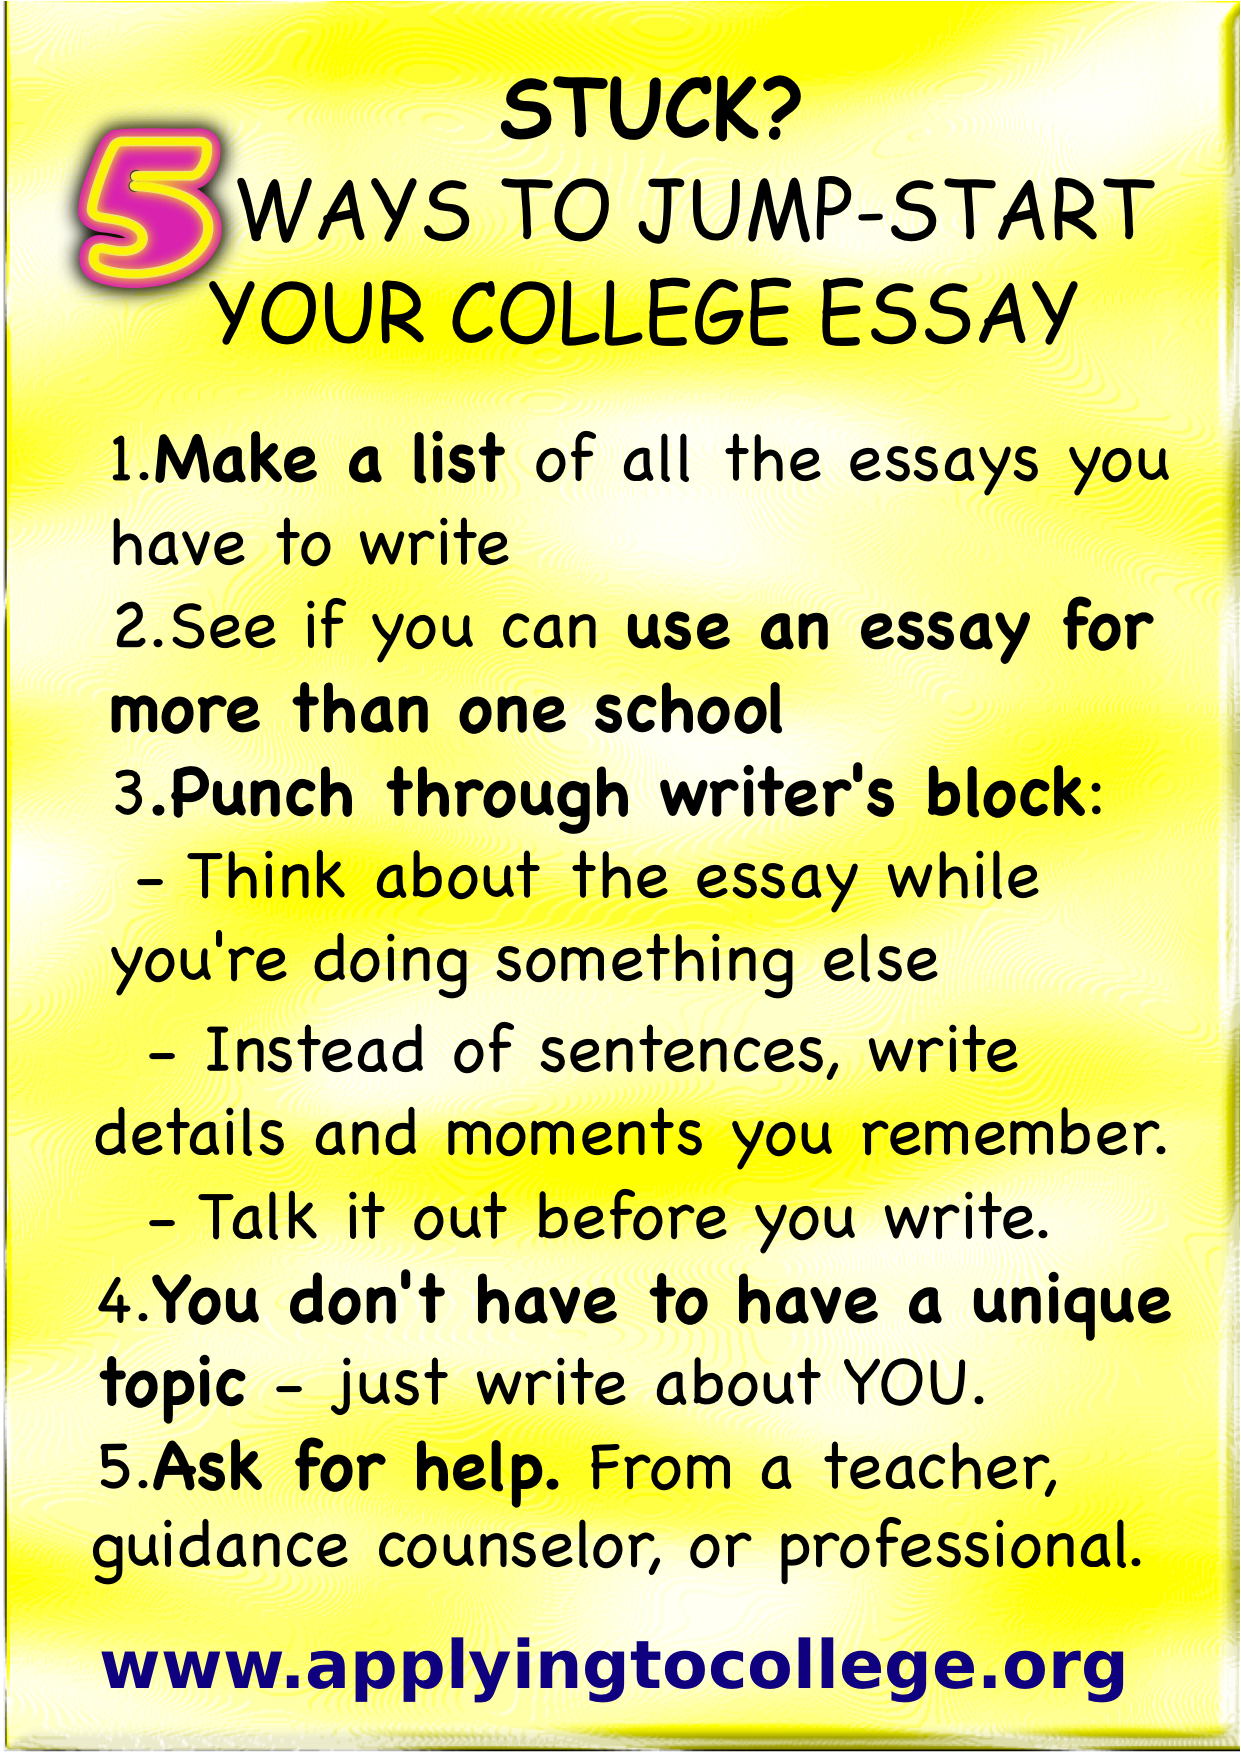 college essay tip Today's tips focus on the personal essay  hi carolyn, students get stressed  regarding writing college admission essays your tips are going.